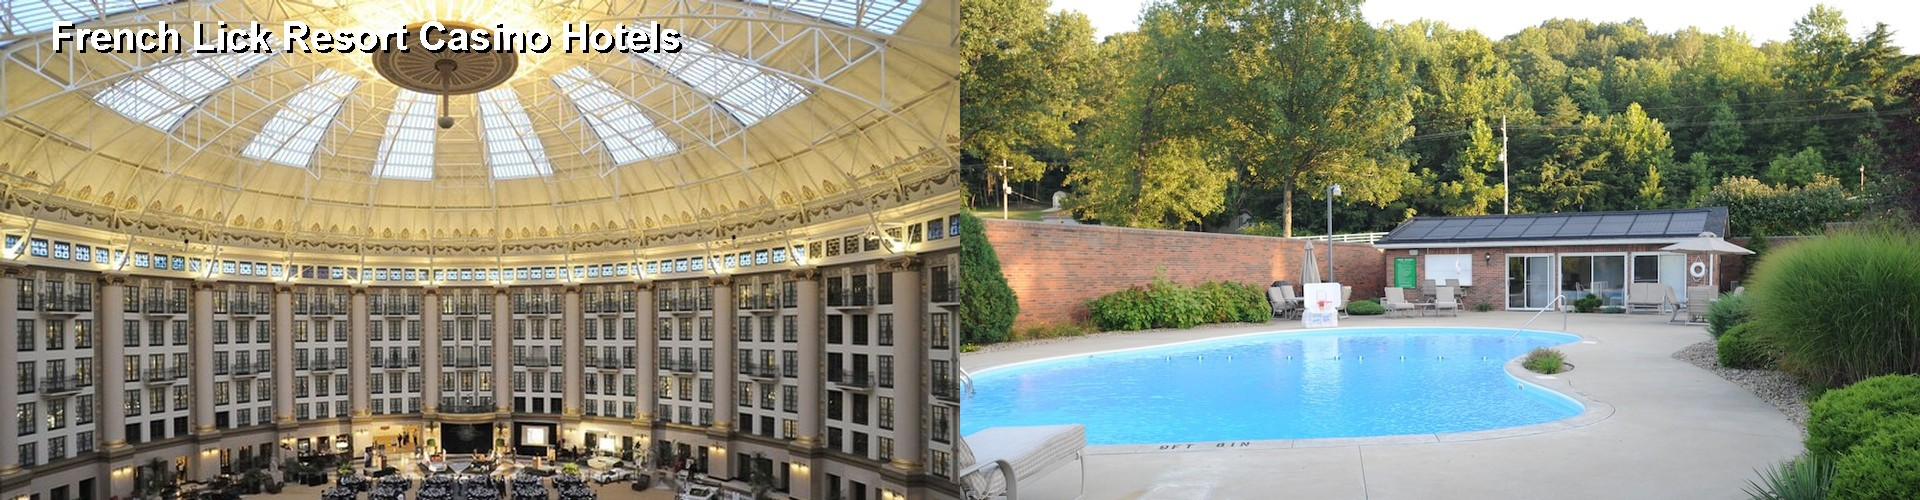 5 Best Hotels Near French Lick Resort